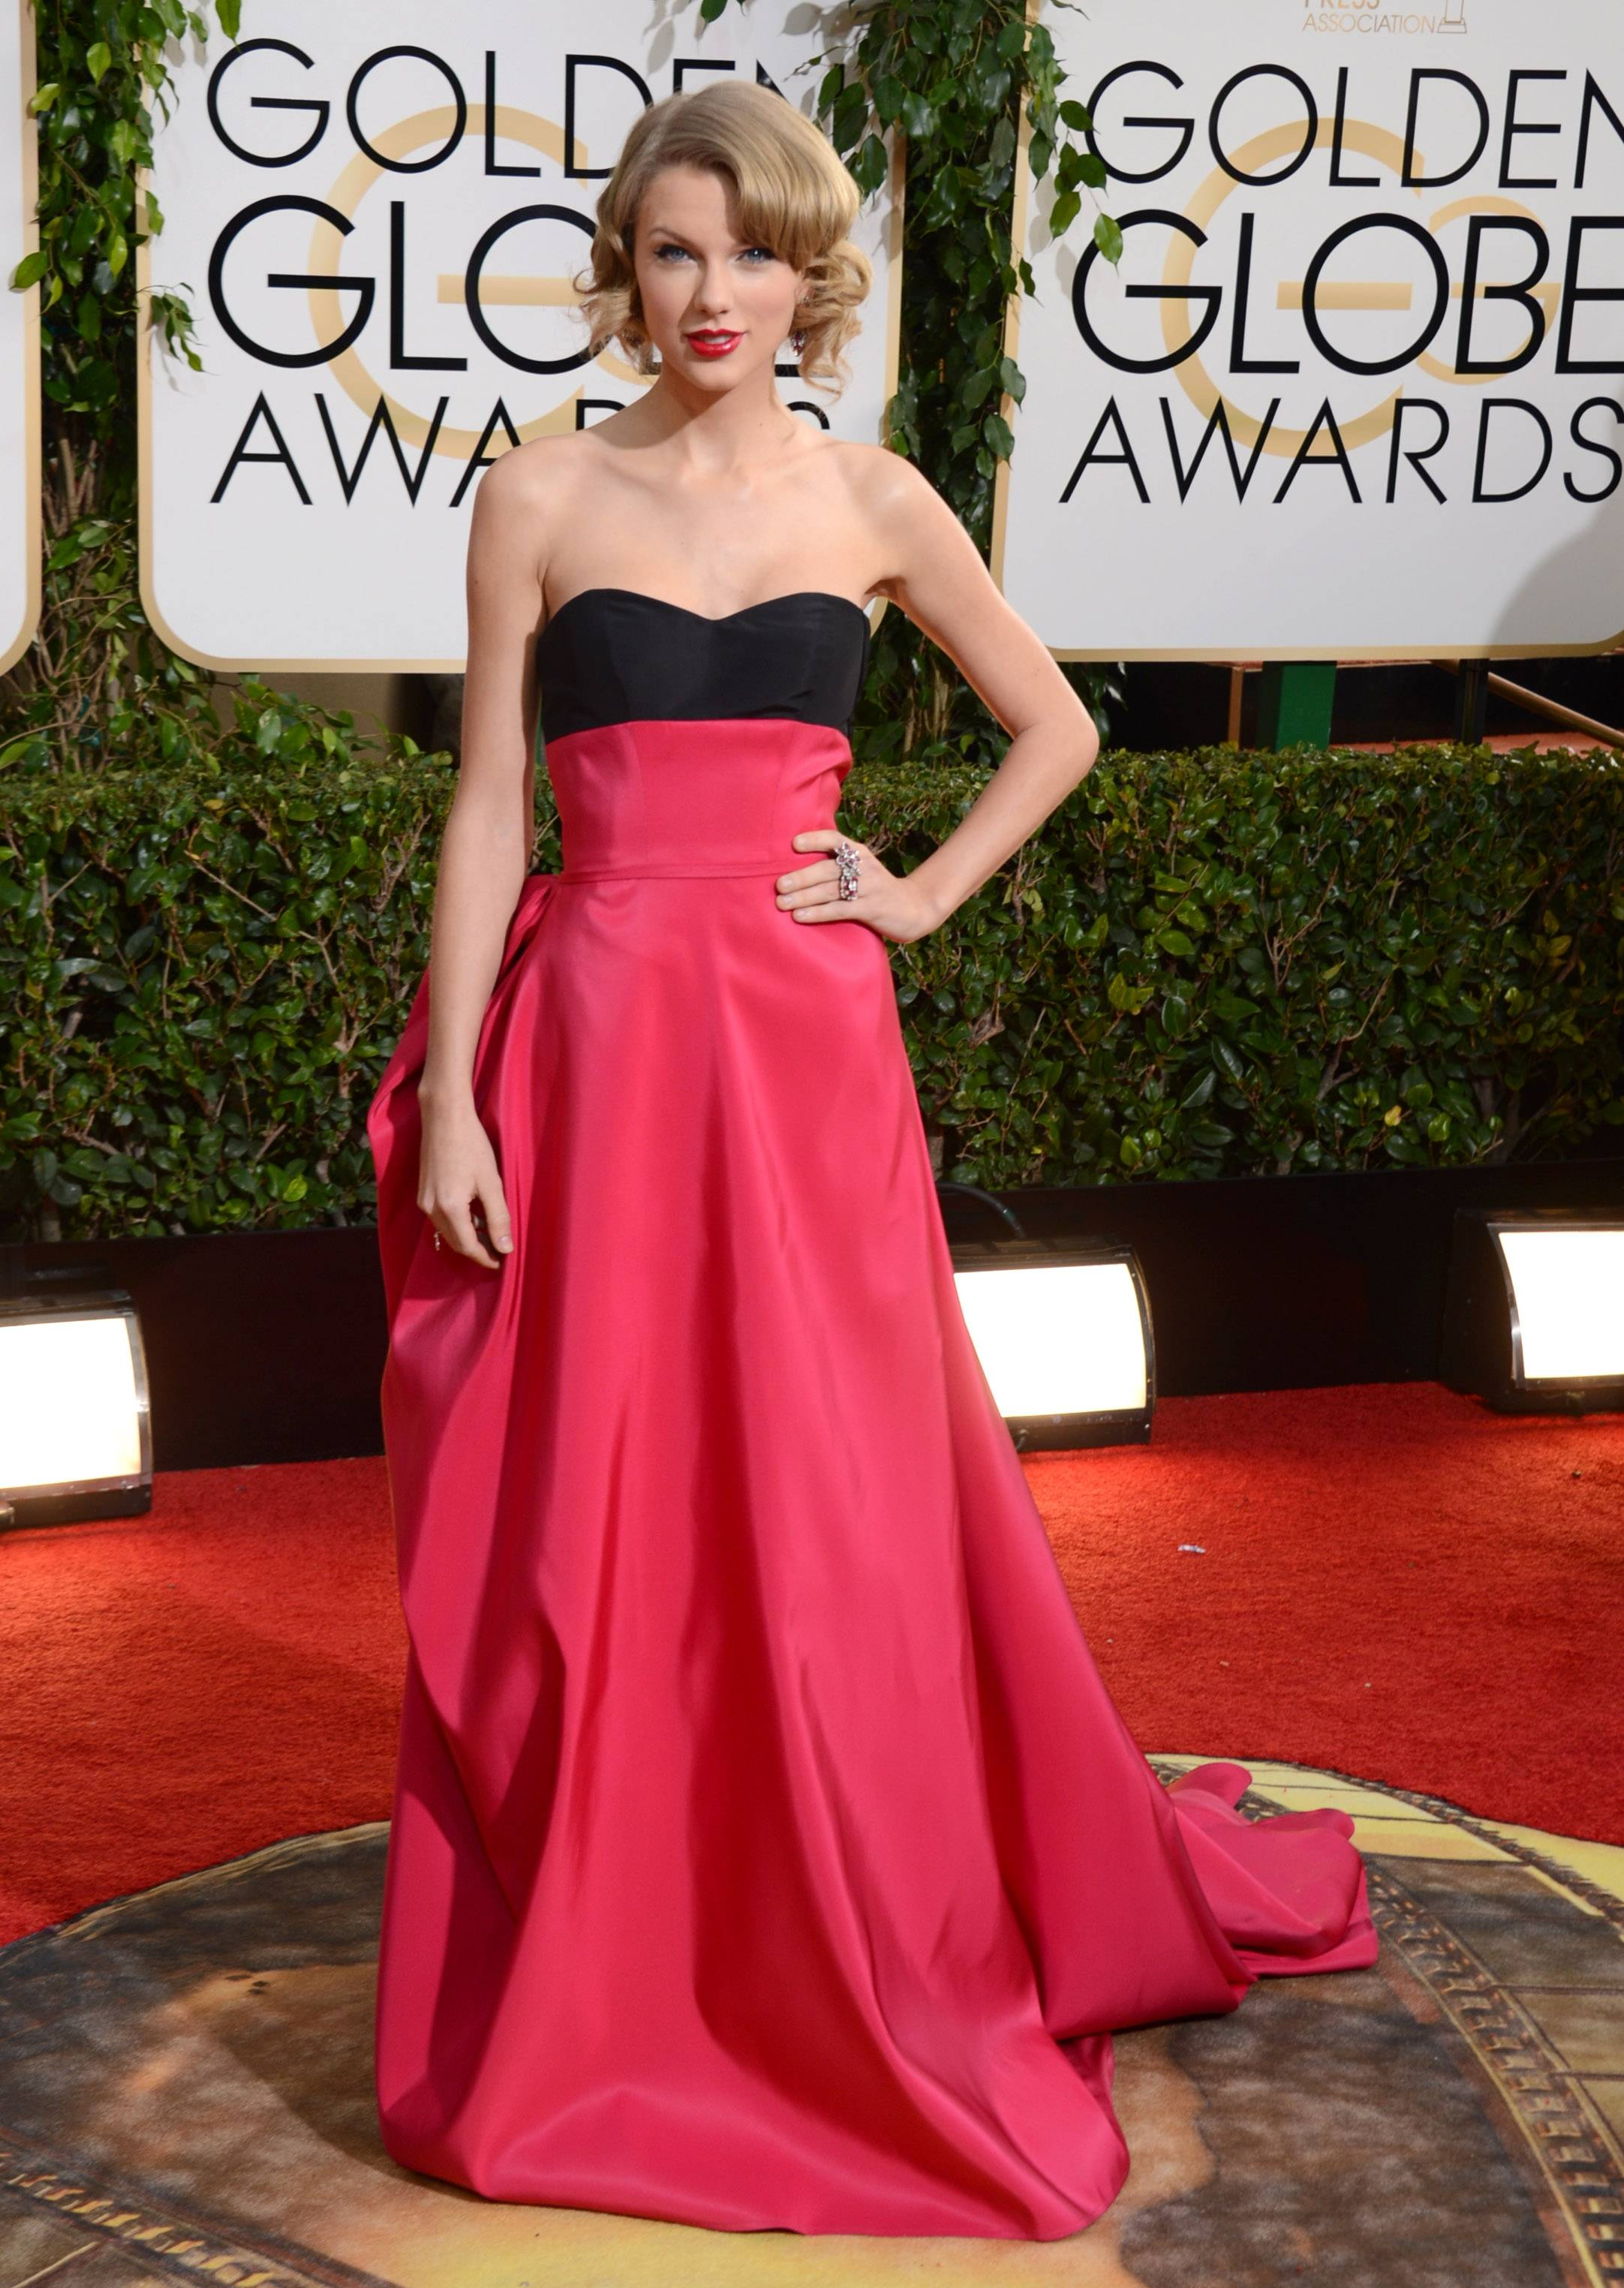 Taylor Swift goes for Hollywood glam on Golden Globes night.